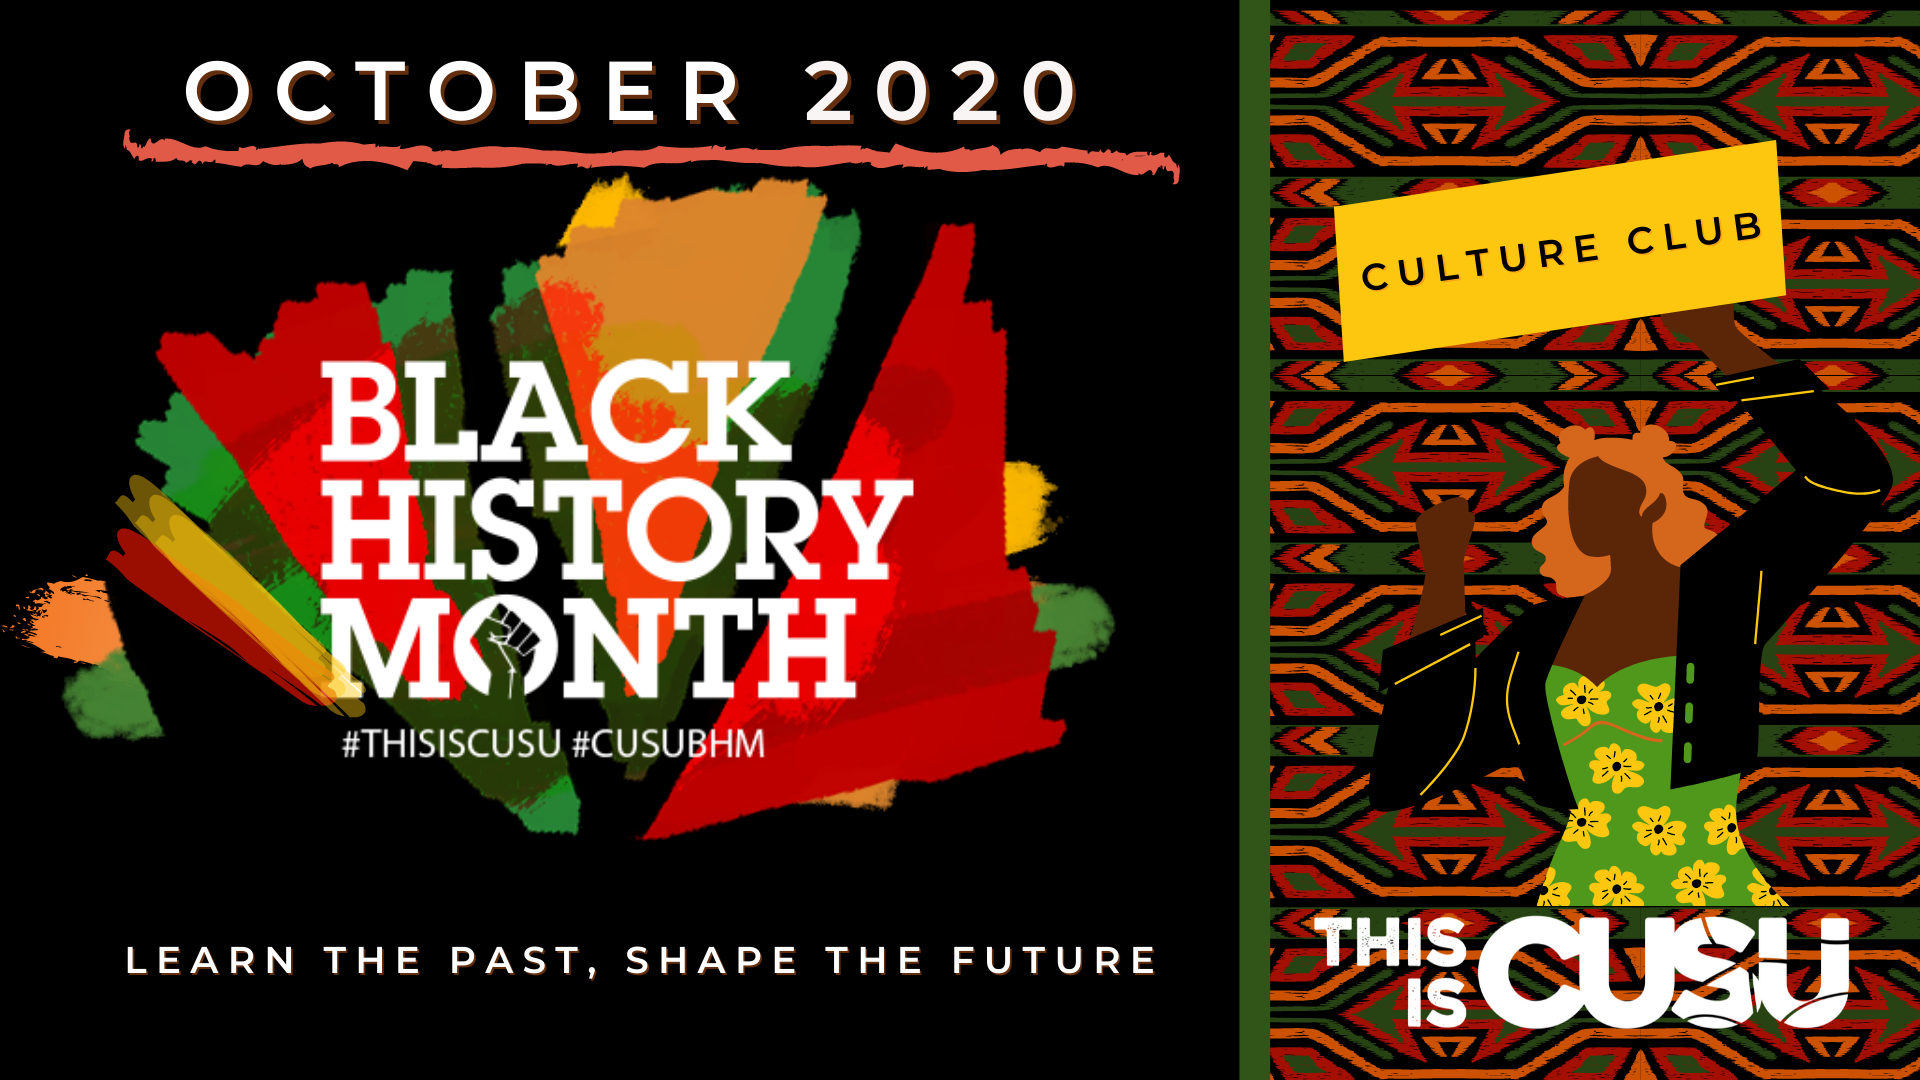 Black History Month - Culture Club